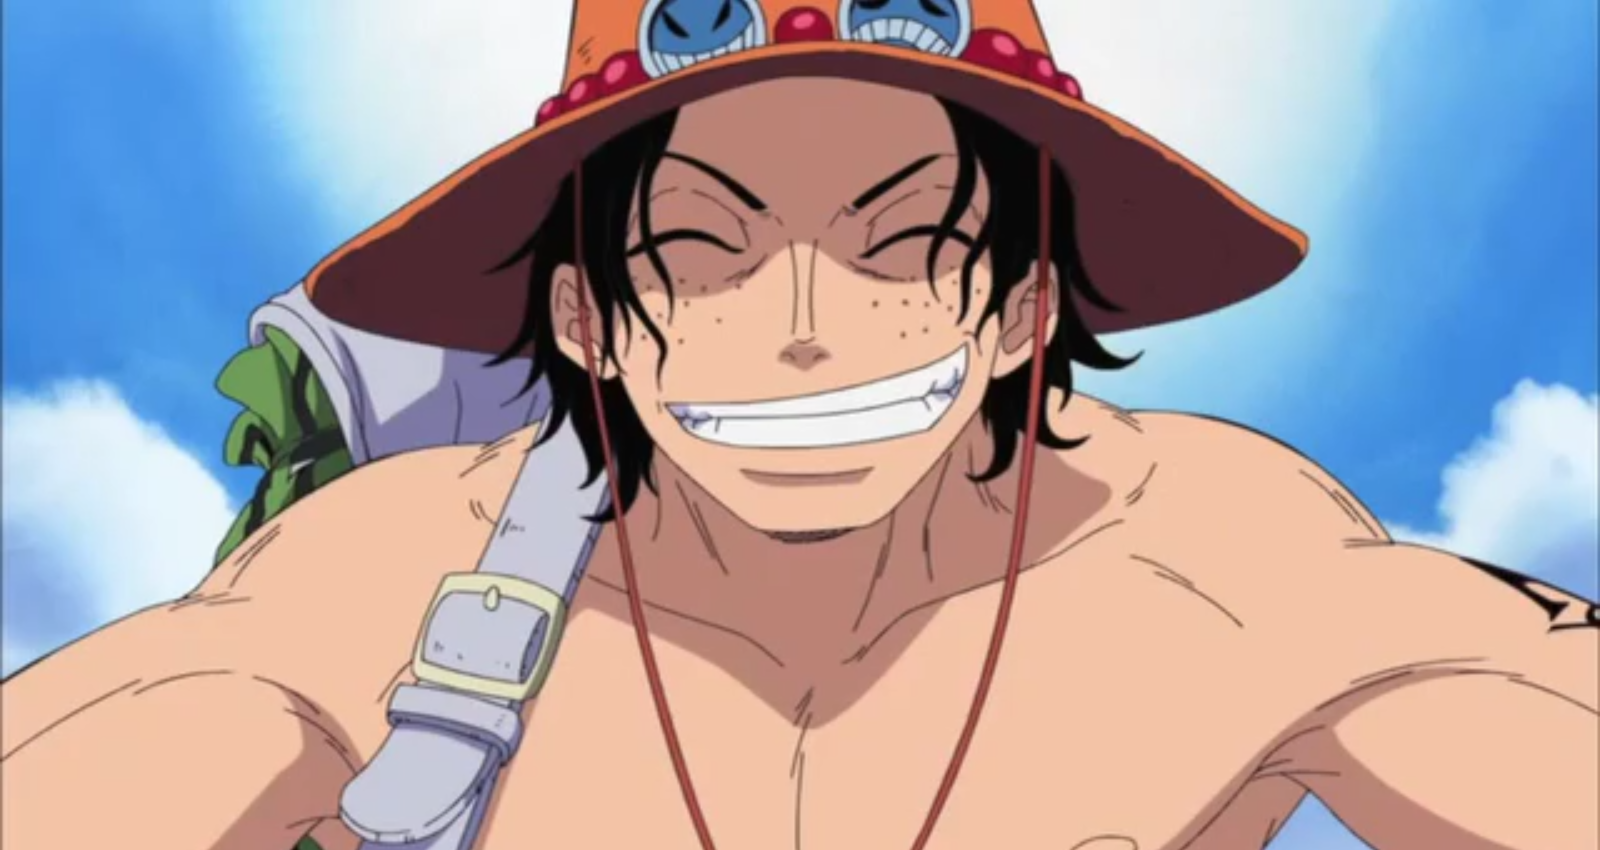 Dork ;) | One piece manga, One piece ace, One piece drawing